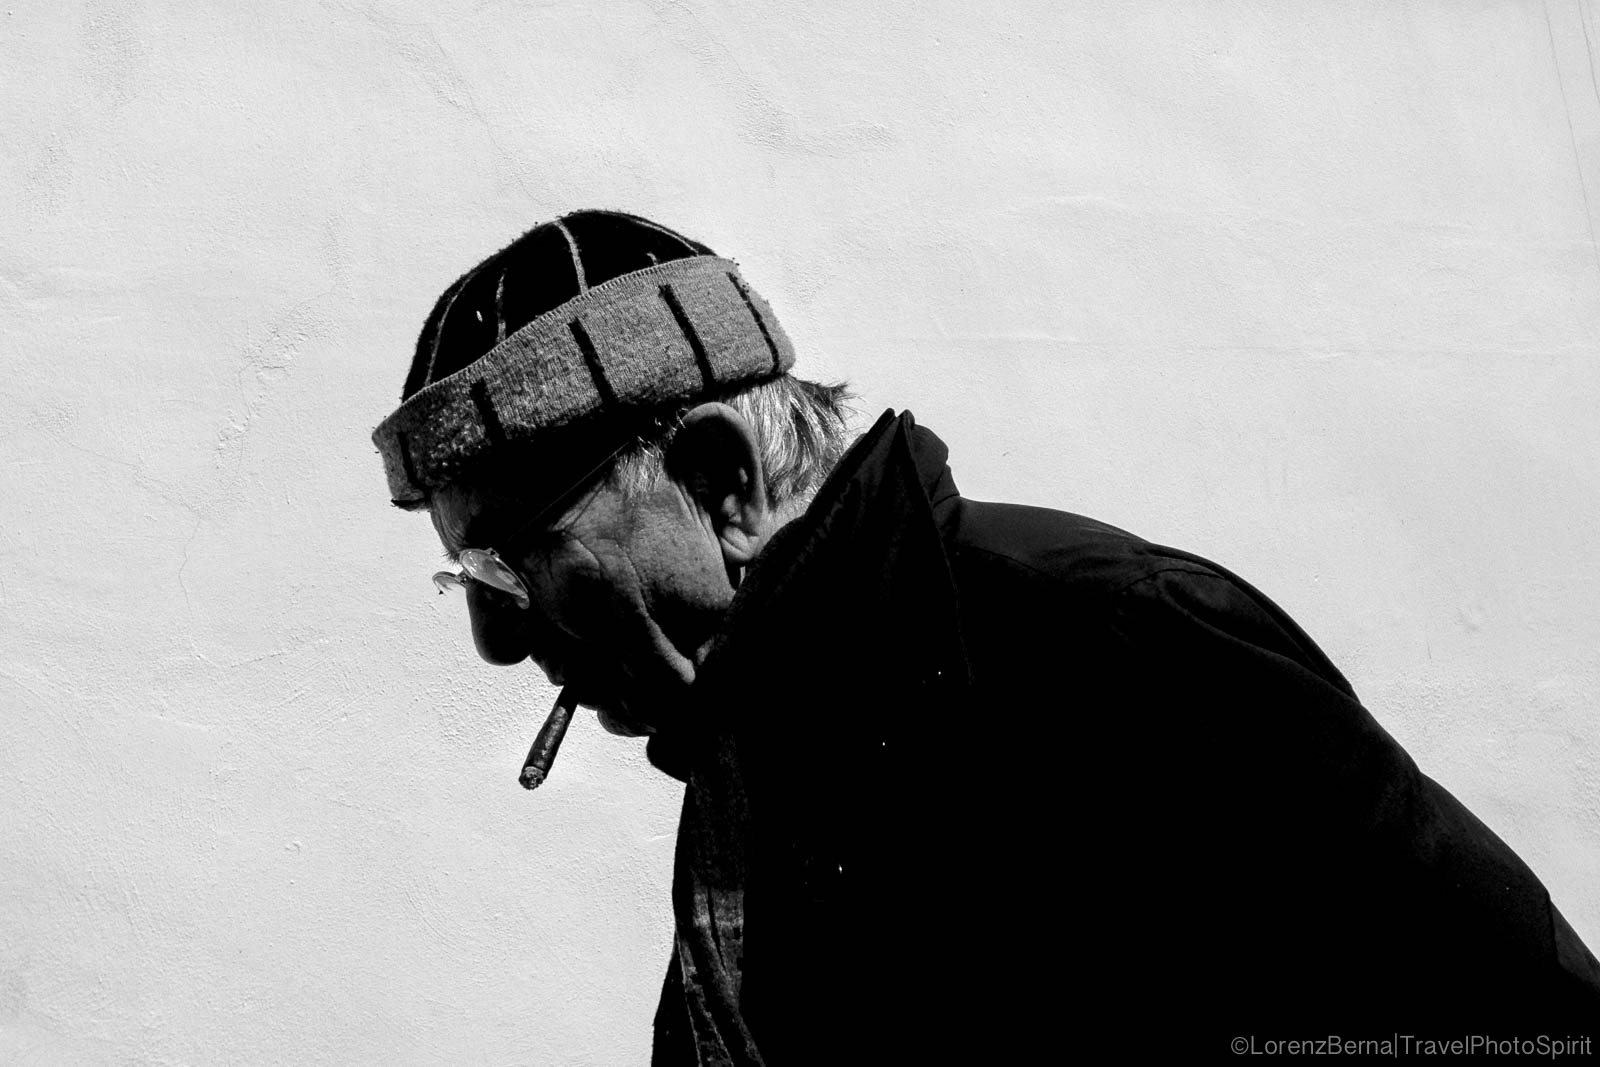 Street Photography in Naples : an old man walking with a cigarette on lips.